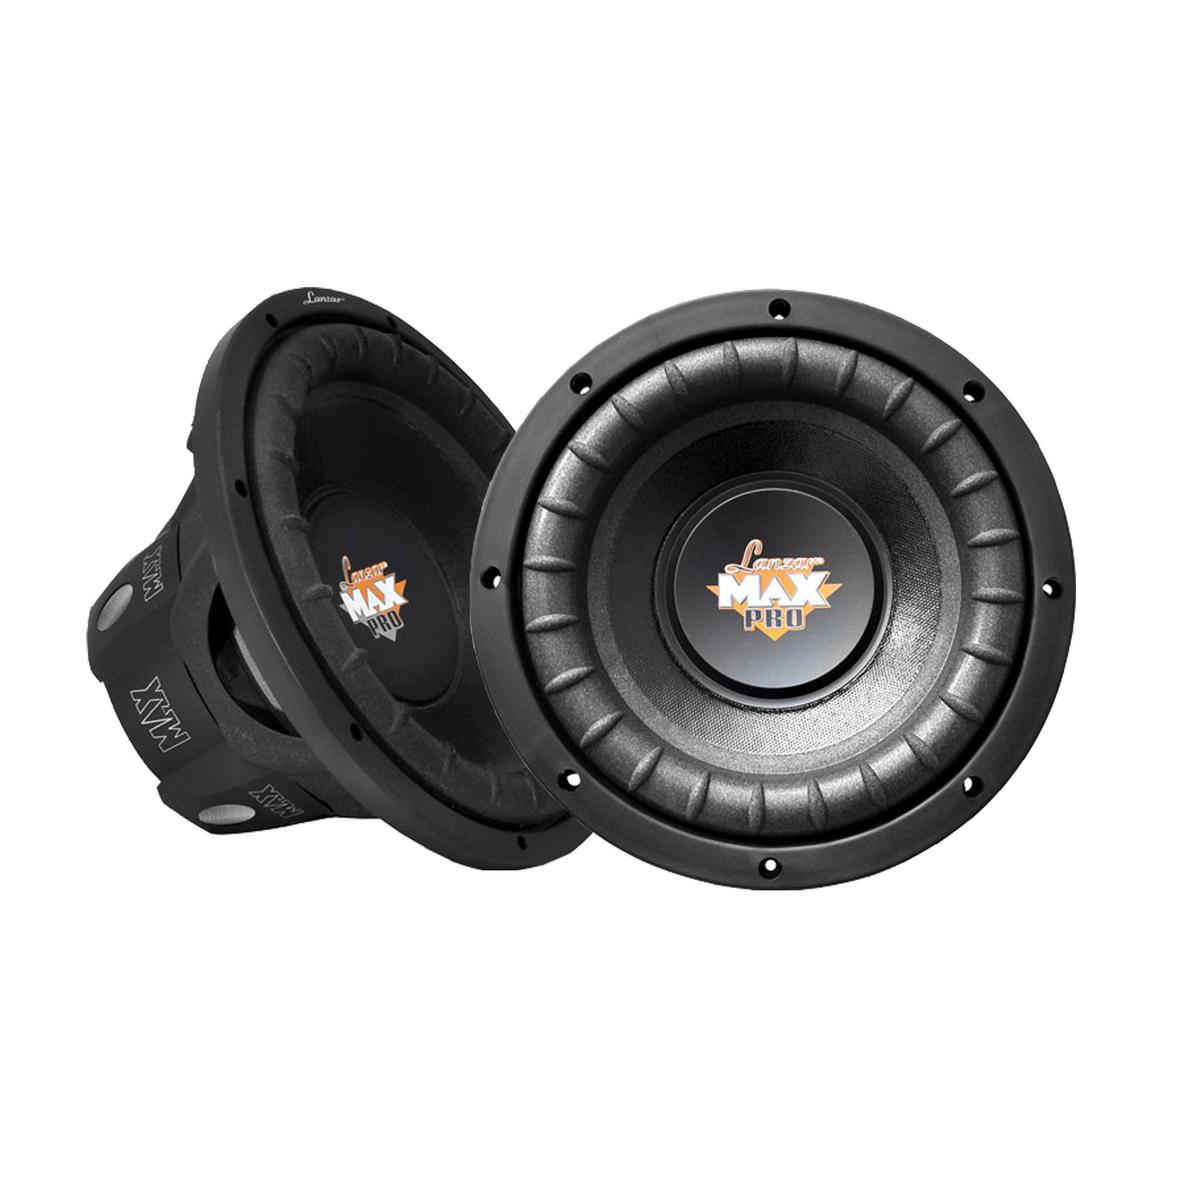 "Lanzar MAXP64 Max Pro 6.5"" 1200w Small Enclosure 4 Ohm Subwoofers Pair"